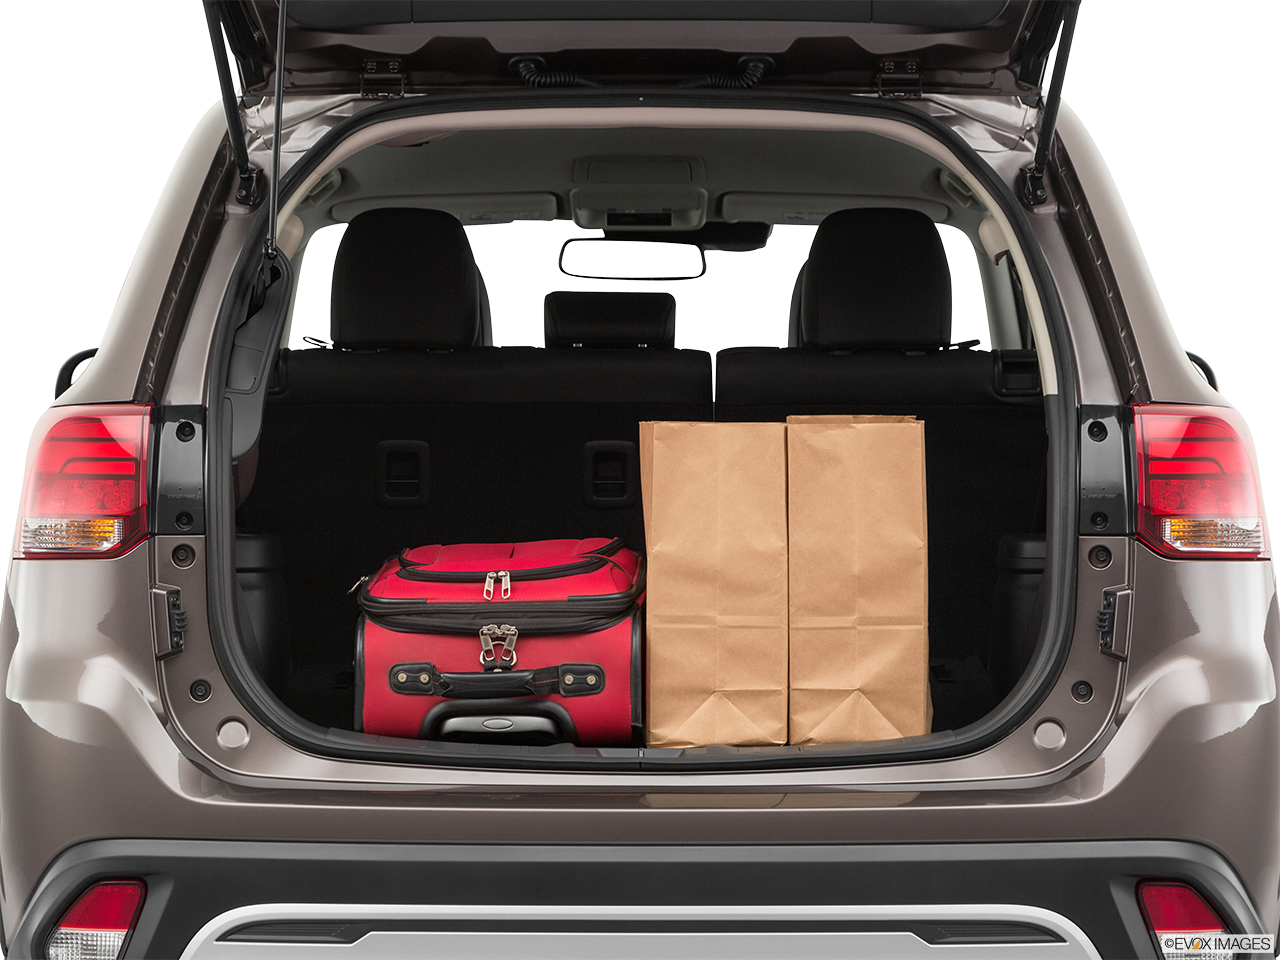 Trunk view of the Mitsubishi Outlander PHEV